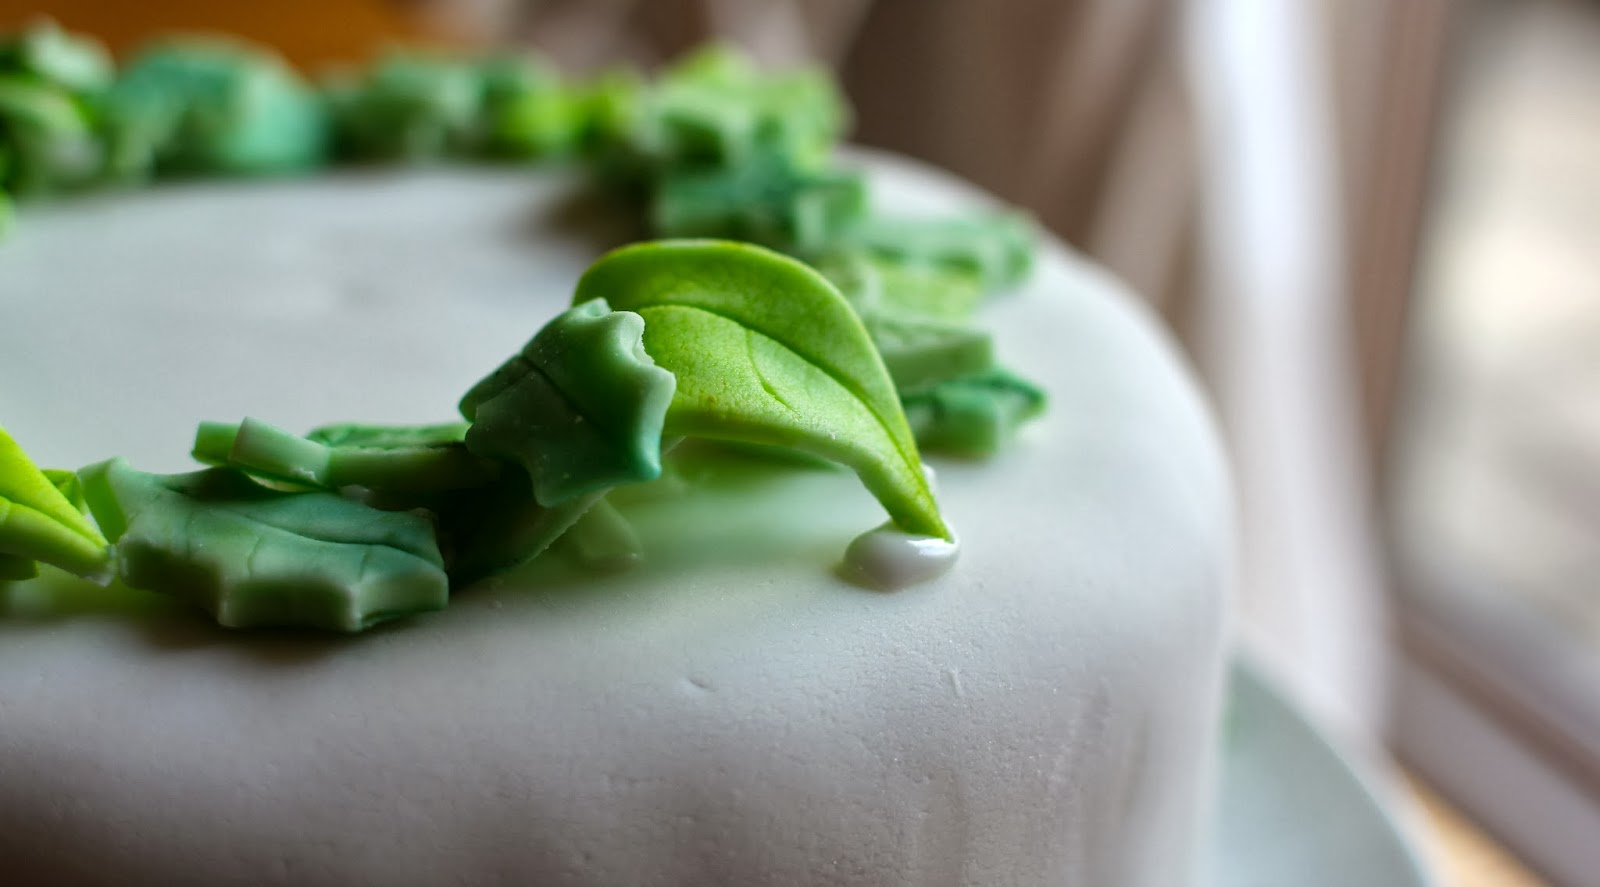 To Decorate A Cake You Make A Shadeof Green Icing